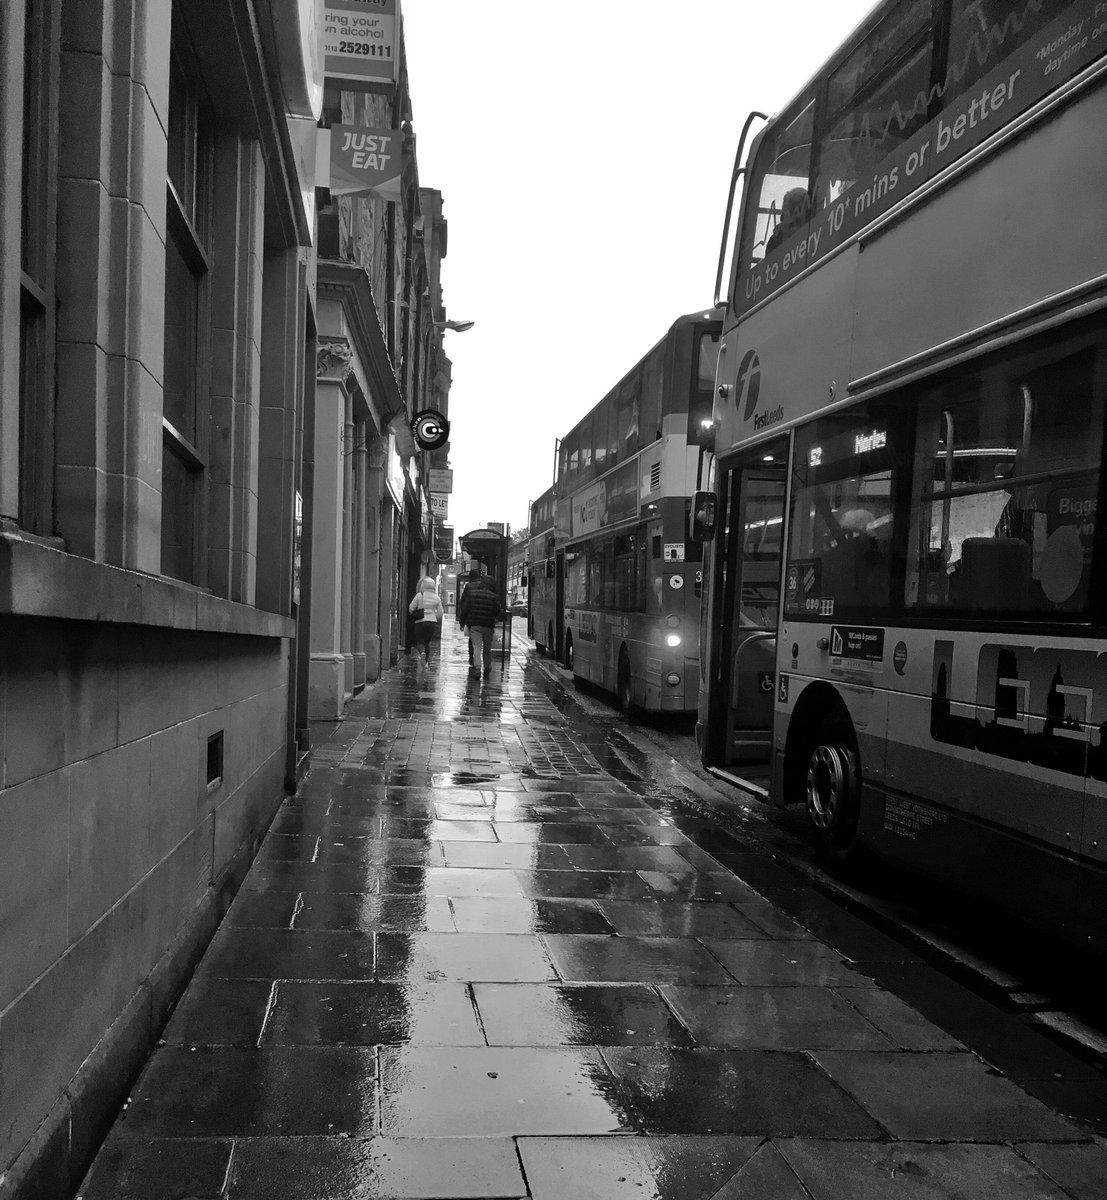 I love it when the pavements are all shiny when it rains ☔️#Morley x https://t.co/md1uufL4zX